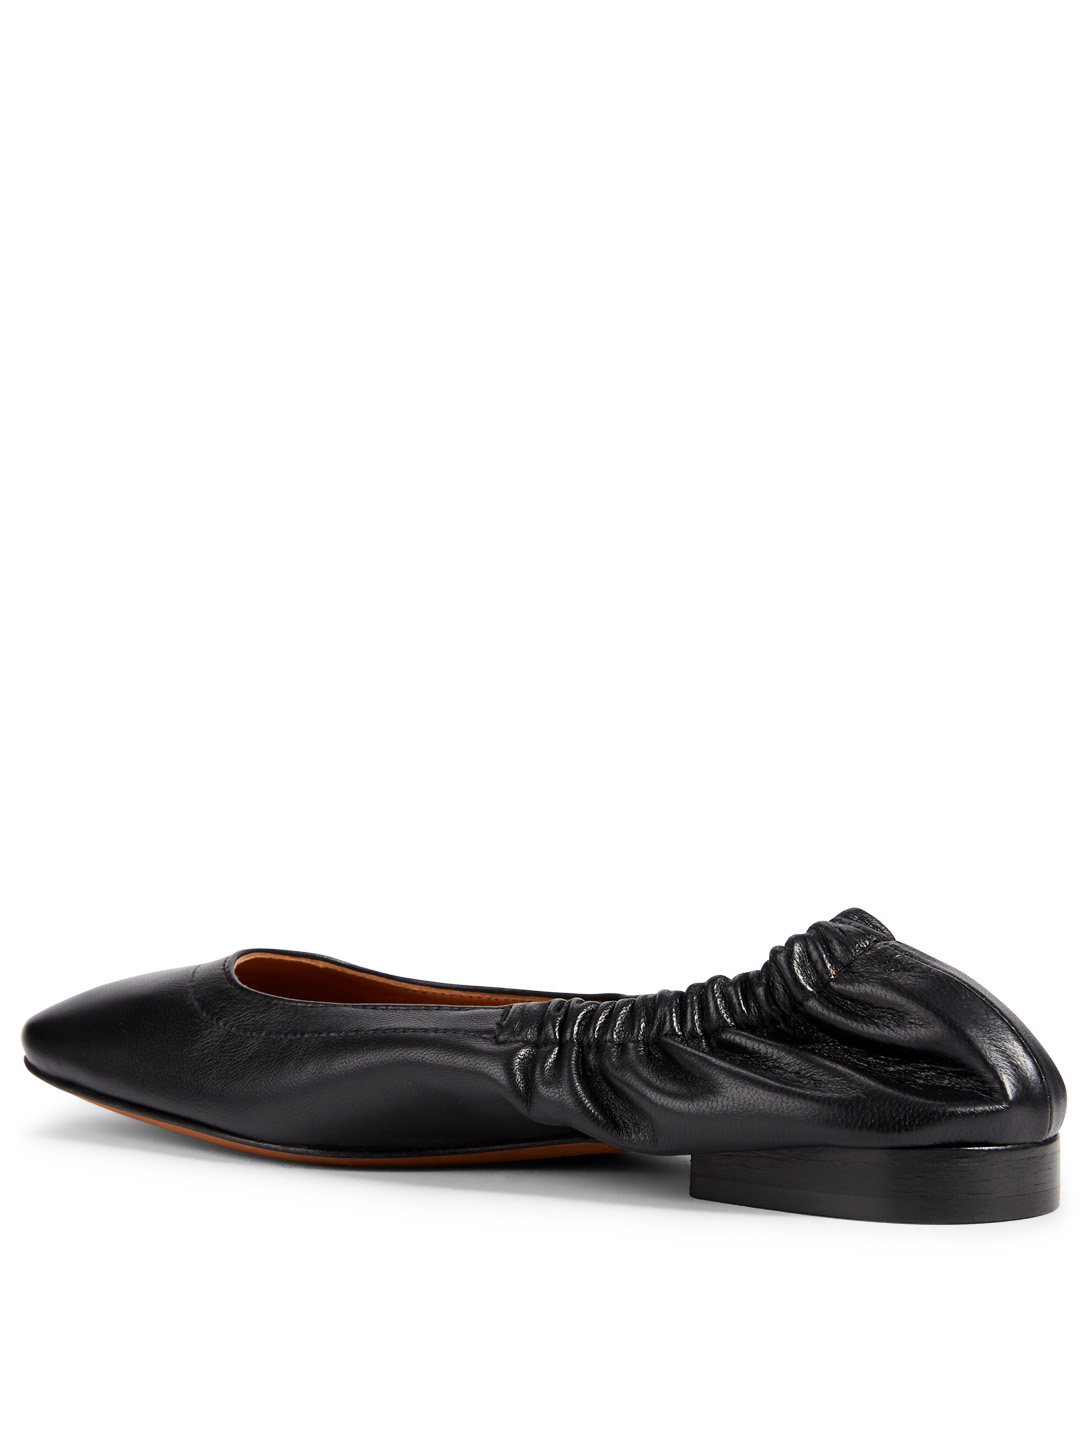 ATP ATELIER Neve Leather Ballet Flats Women's Black